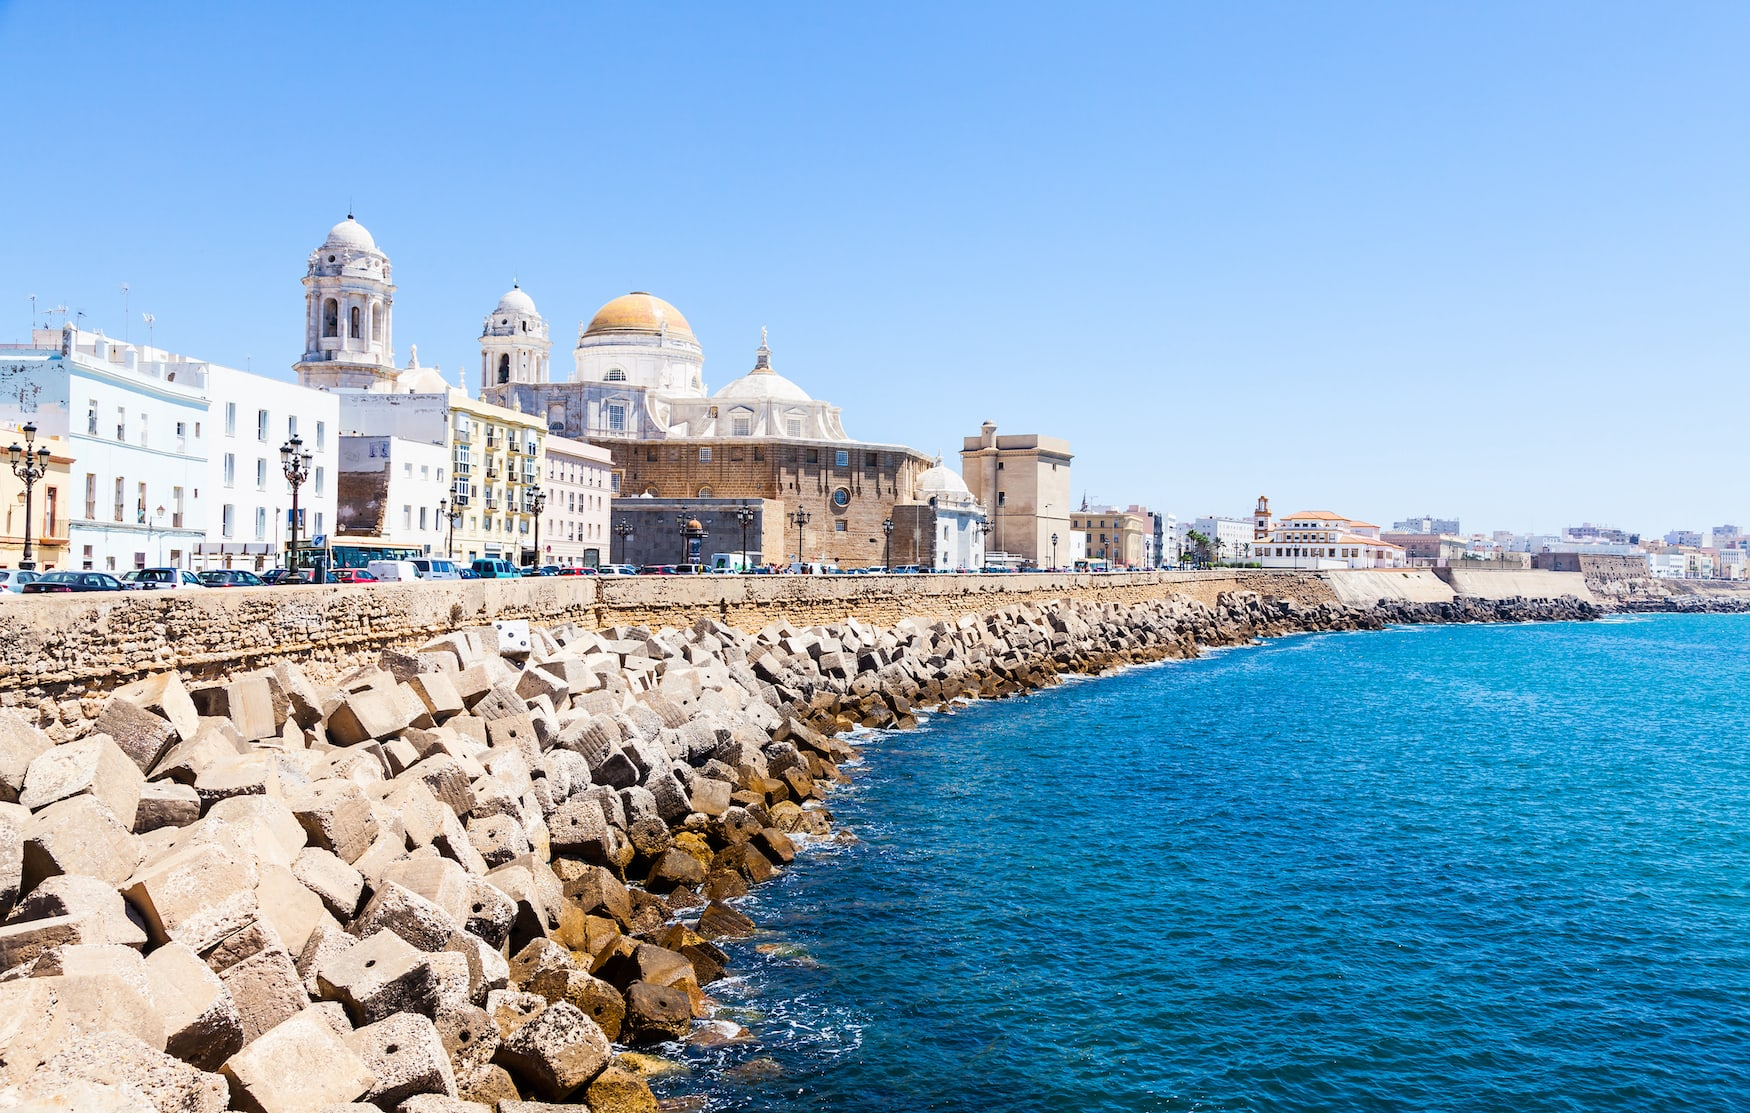 Sonniger Tag in Cadiz, Andalusien